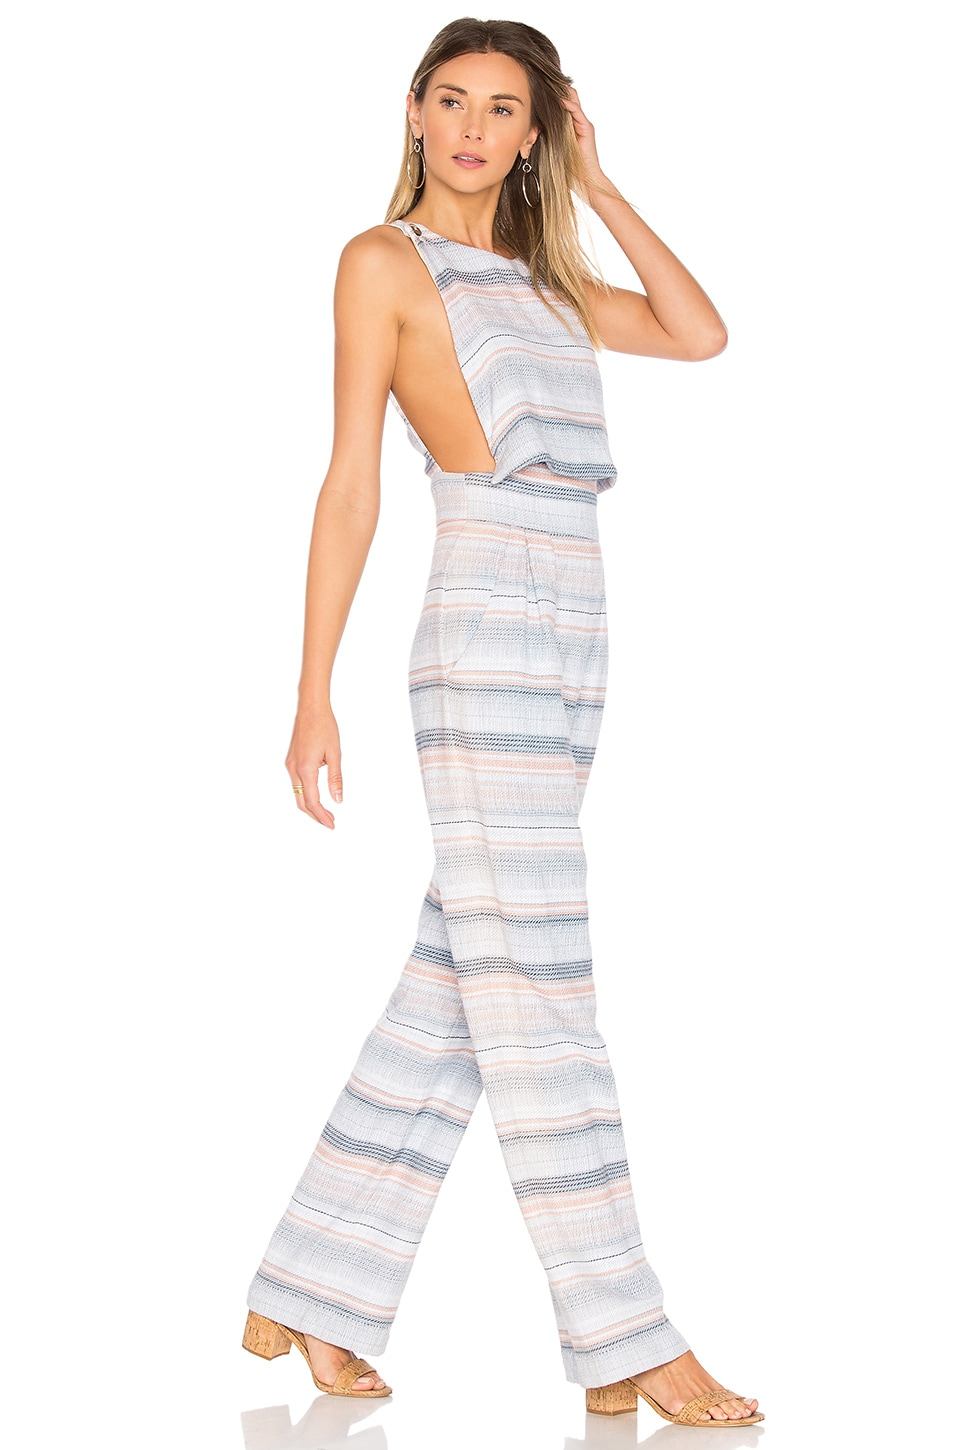 Mara Hoffman Overlap Jumpsuit in Blue Multi